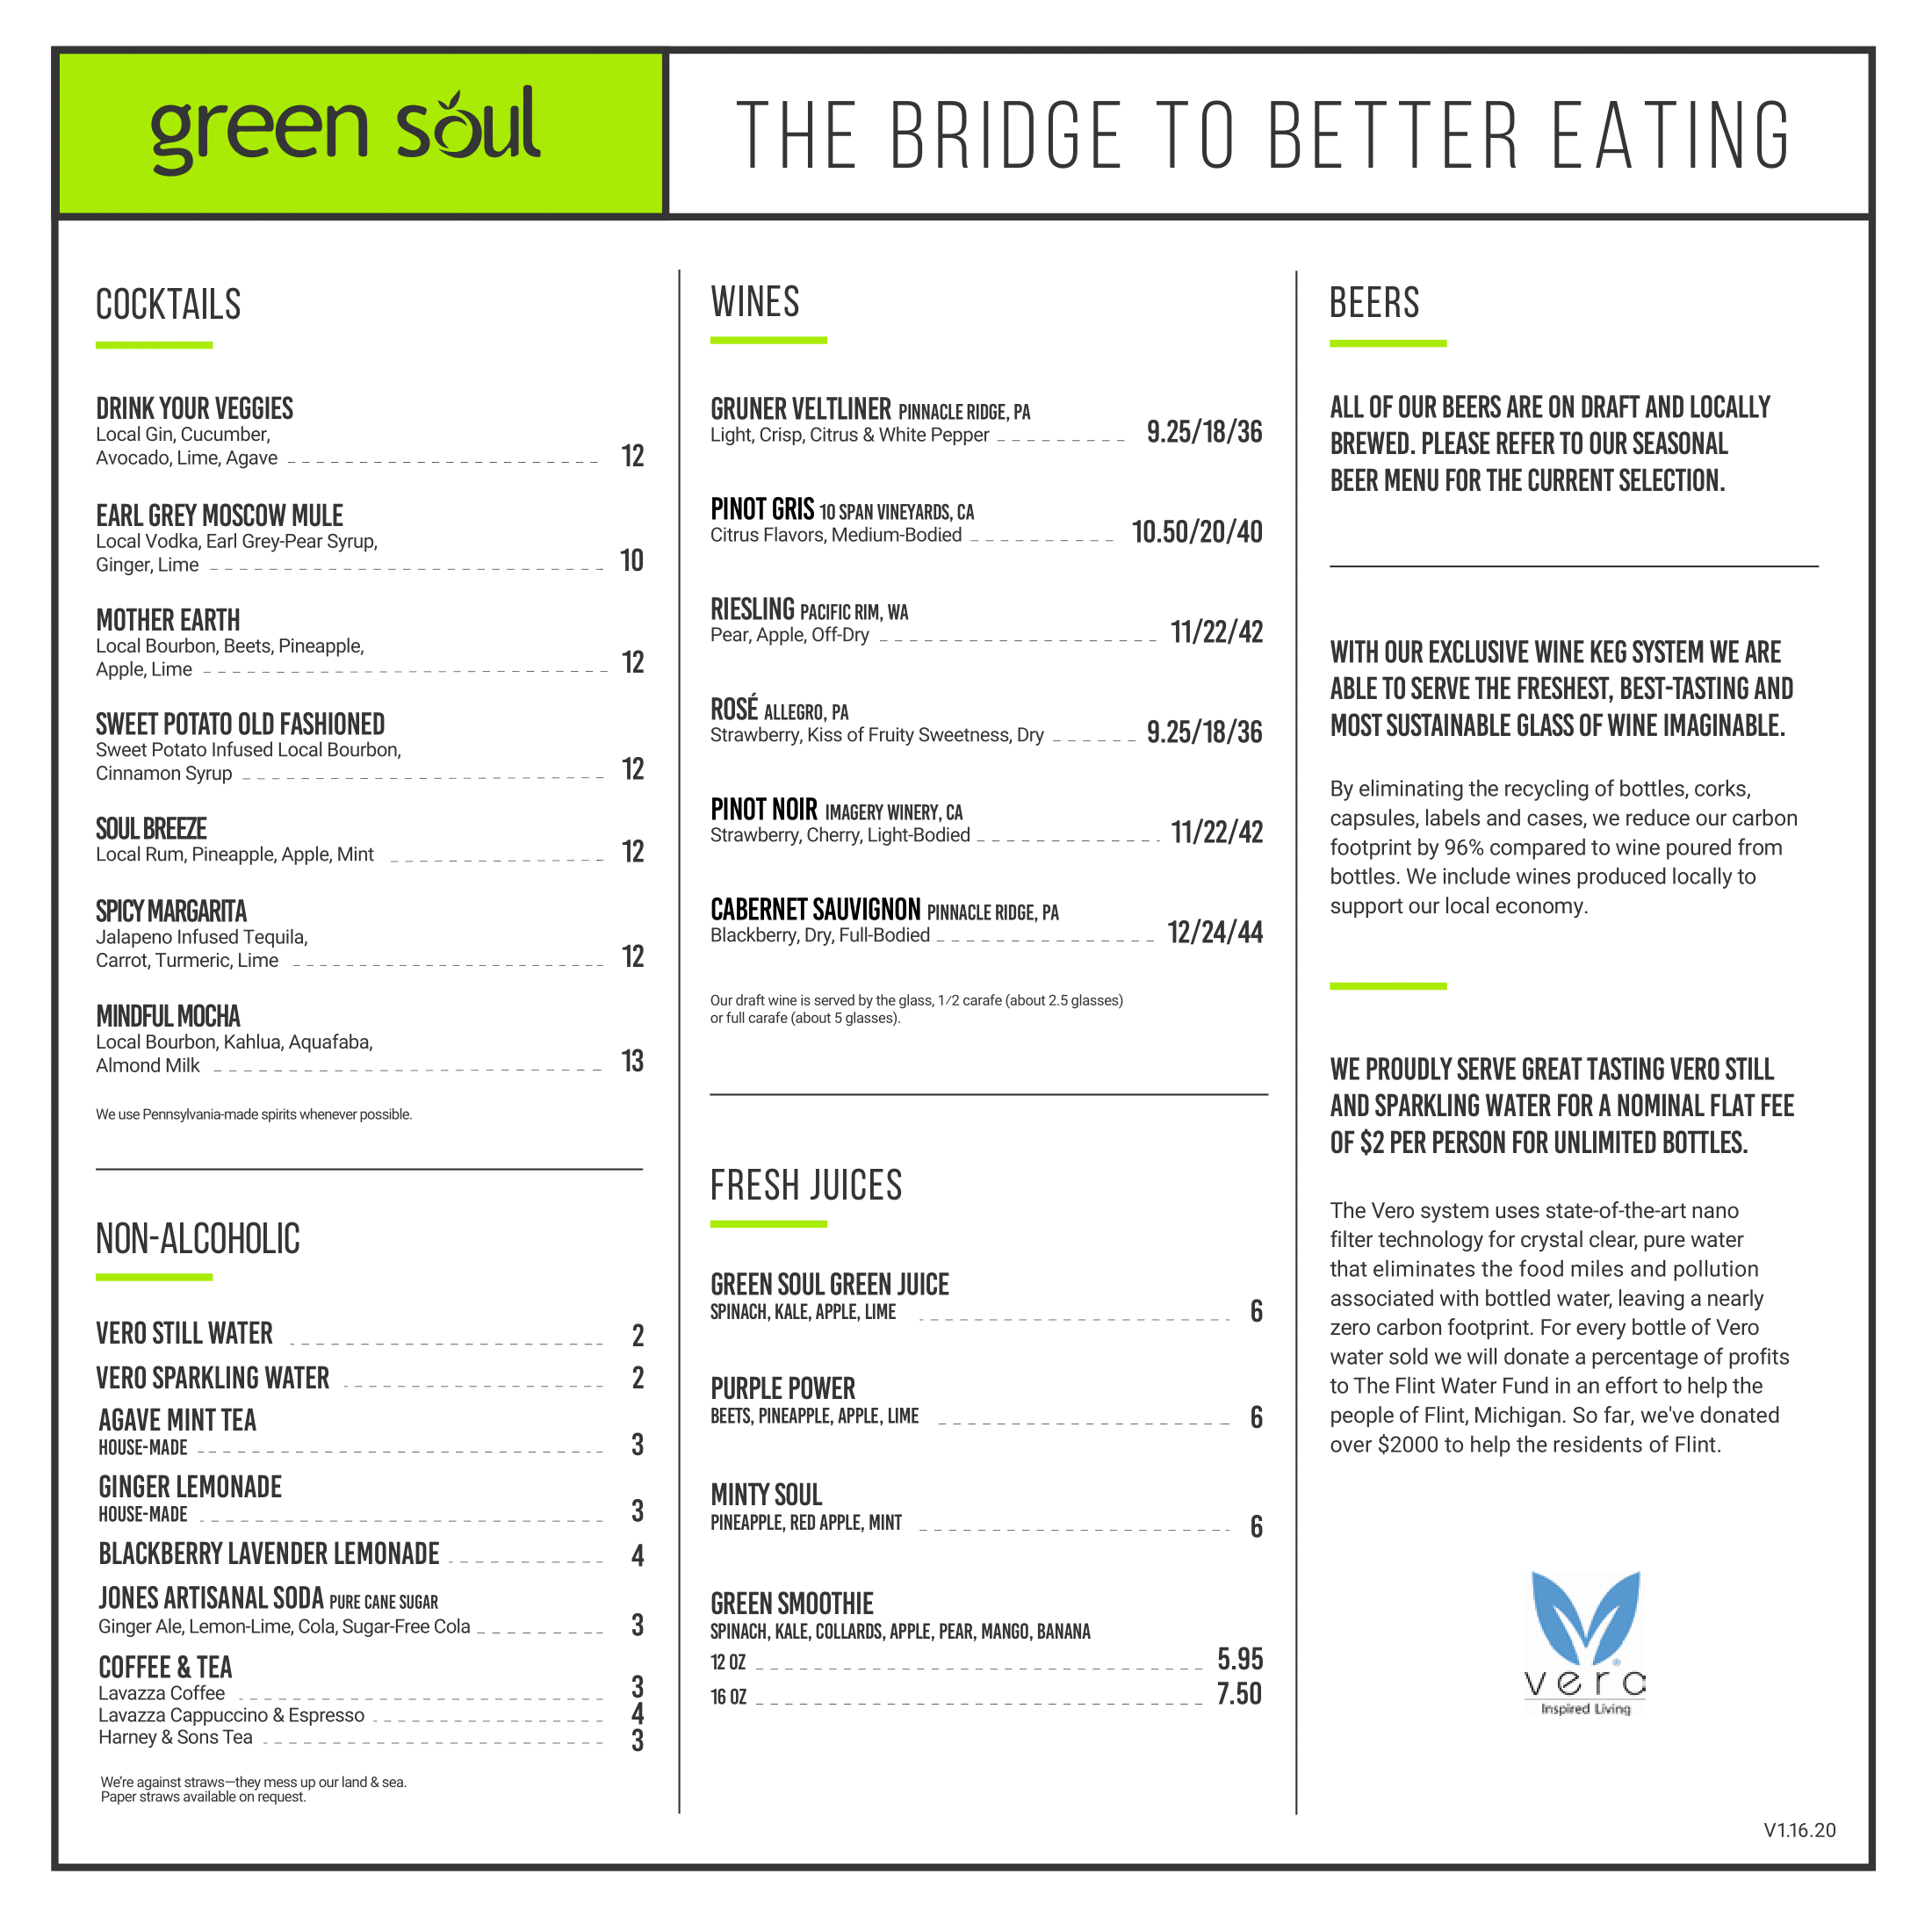 GREEN-SOUL-19-MENU-BACK_12.18.19_R4-1